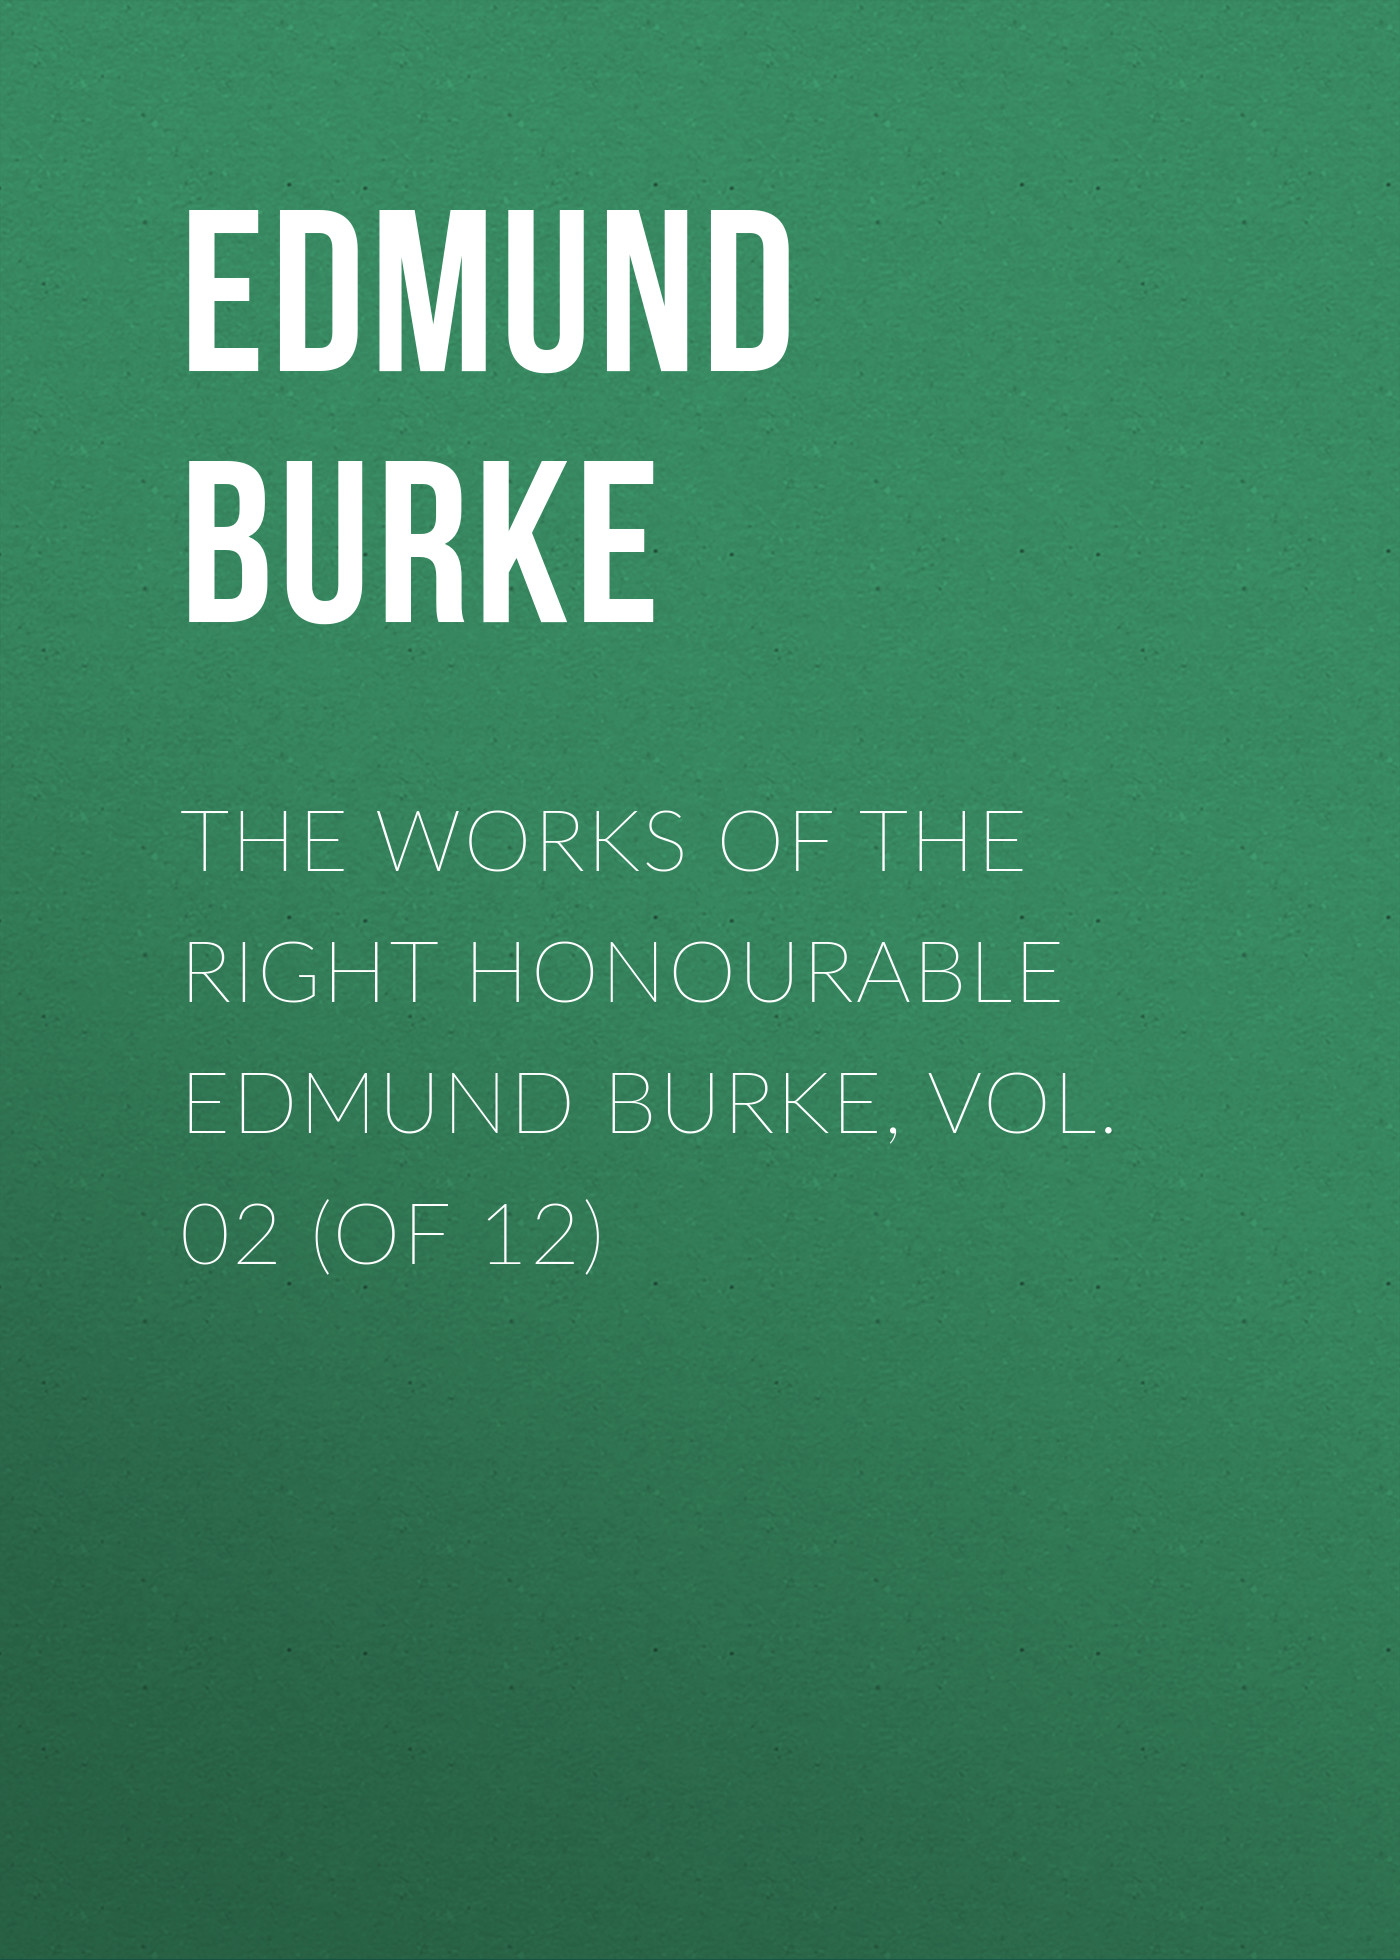 Edmund Burke The Works of the Right Honourable Edmund Burke, Vol. 02 (of 12) edmund burke the works of the right honourable edmund burke vol 12 of 12